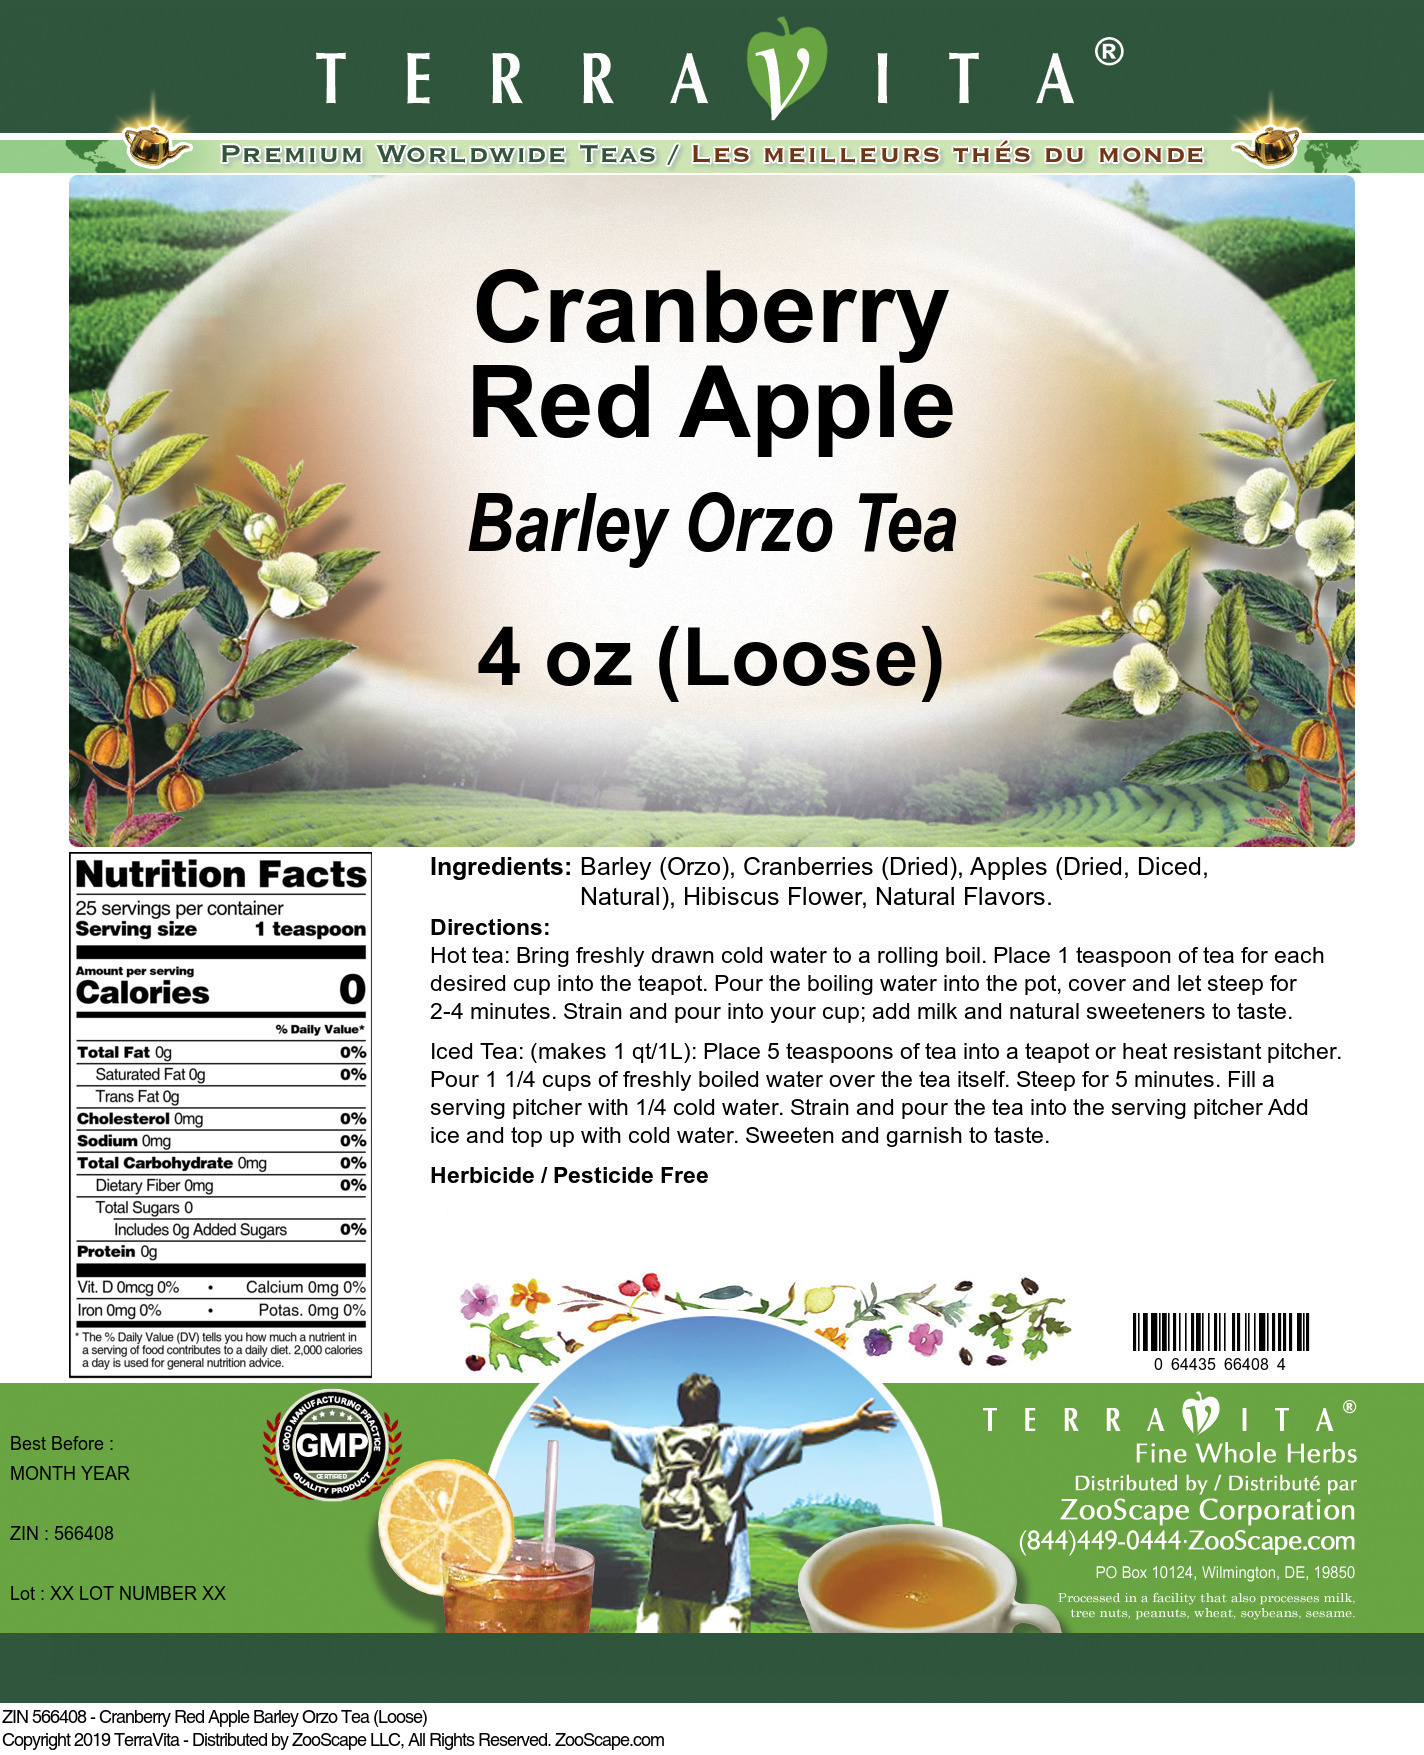 Cranberry Red Apple Barley Orzo